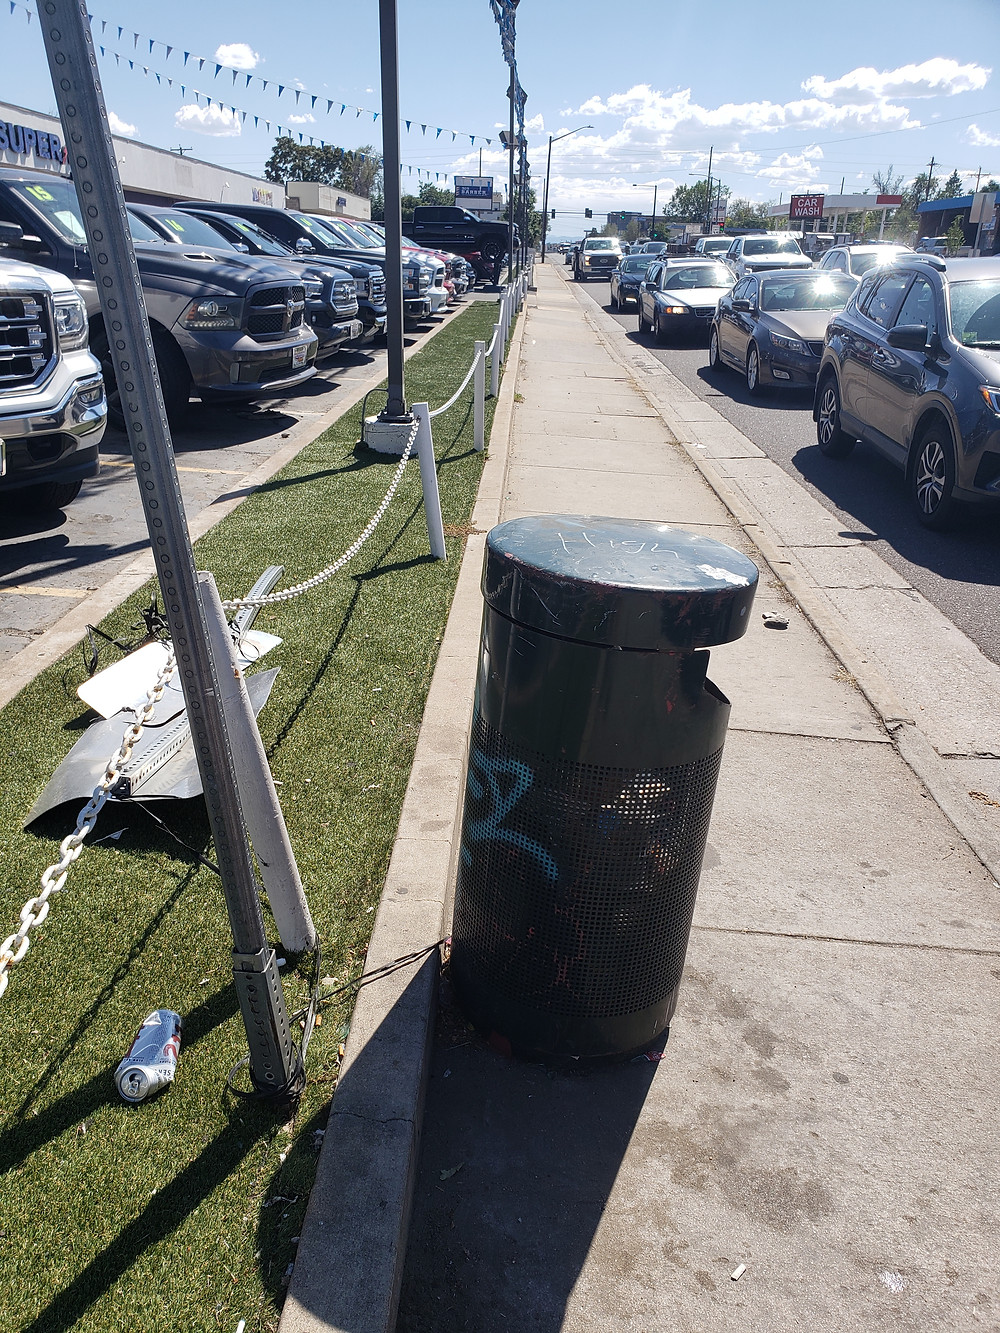 A bus stop pole with no amenities right next to oncoming traffic